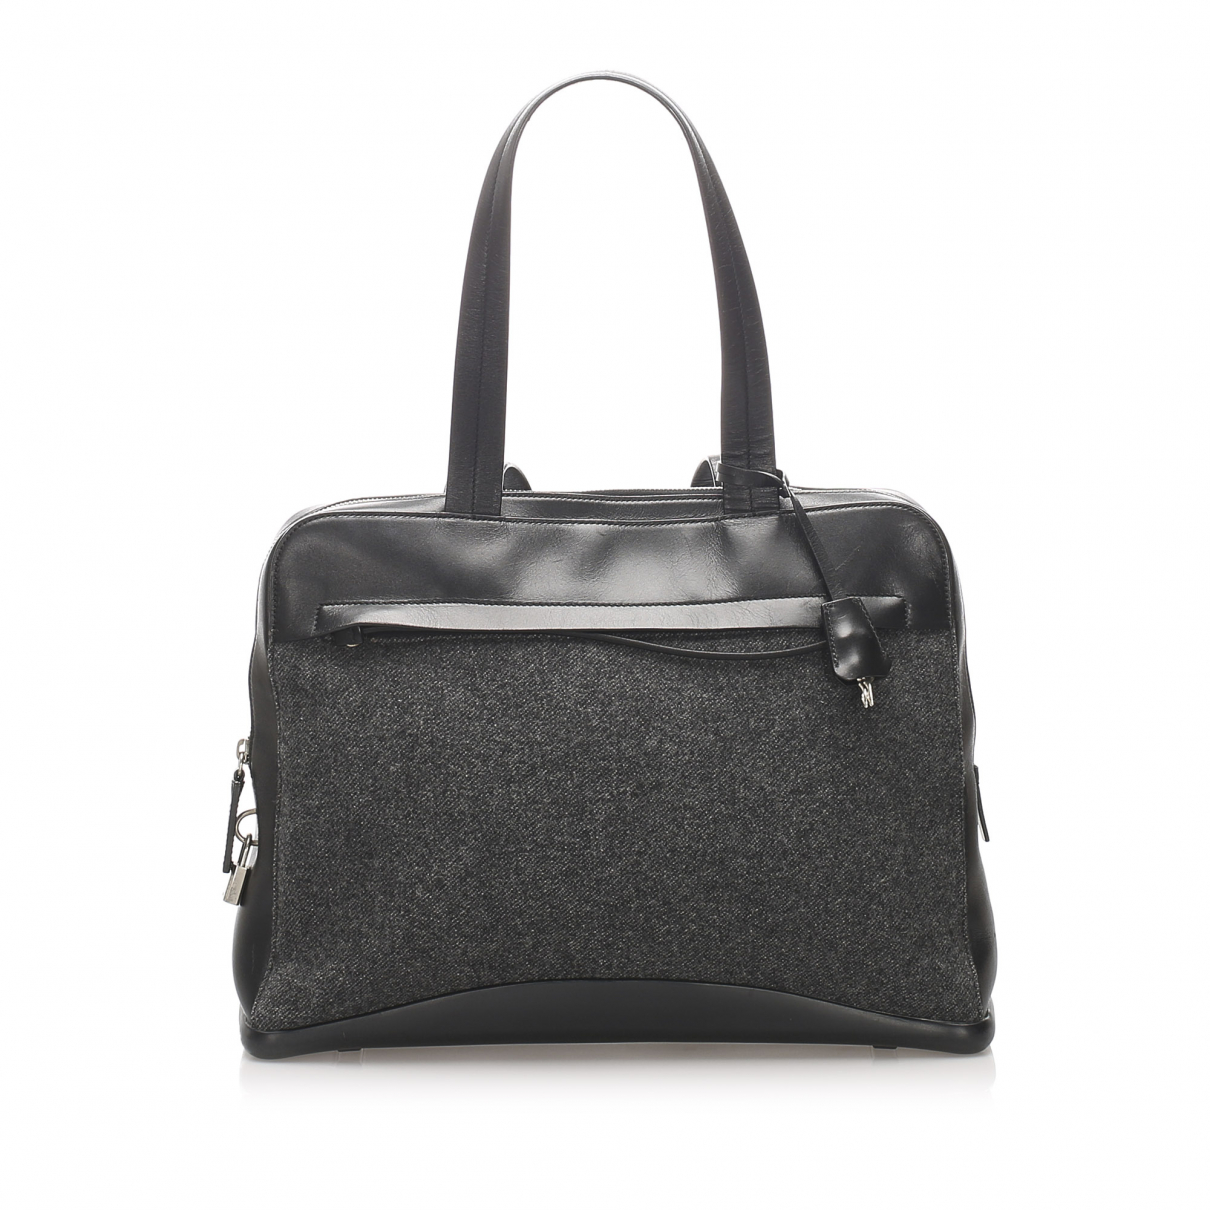 Prada N Grey Cloth handbag for Women N